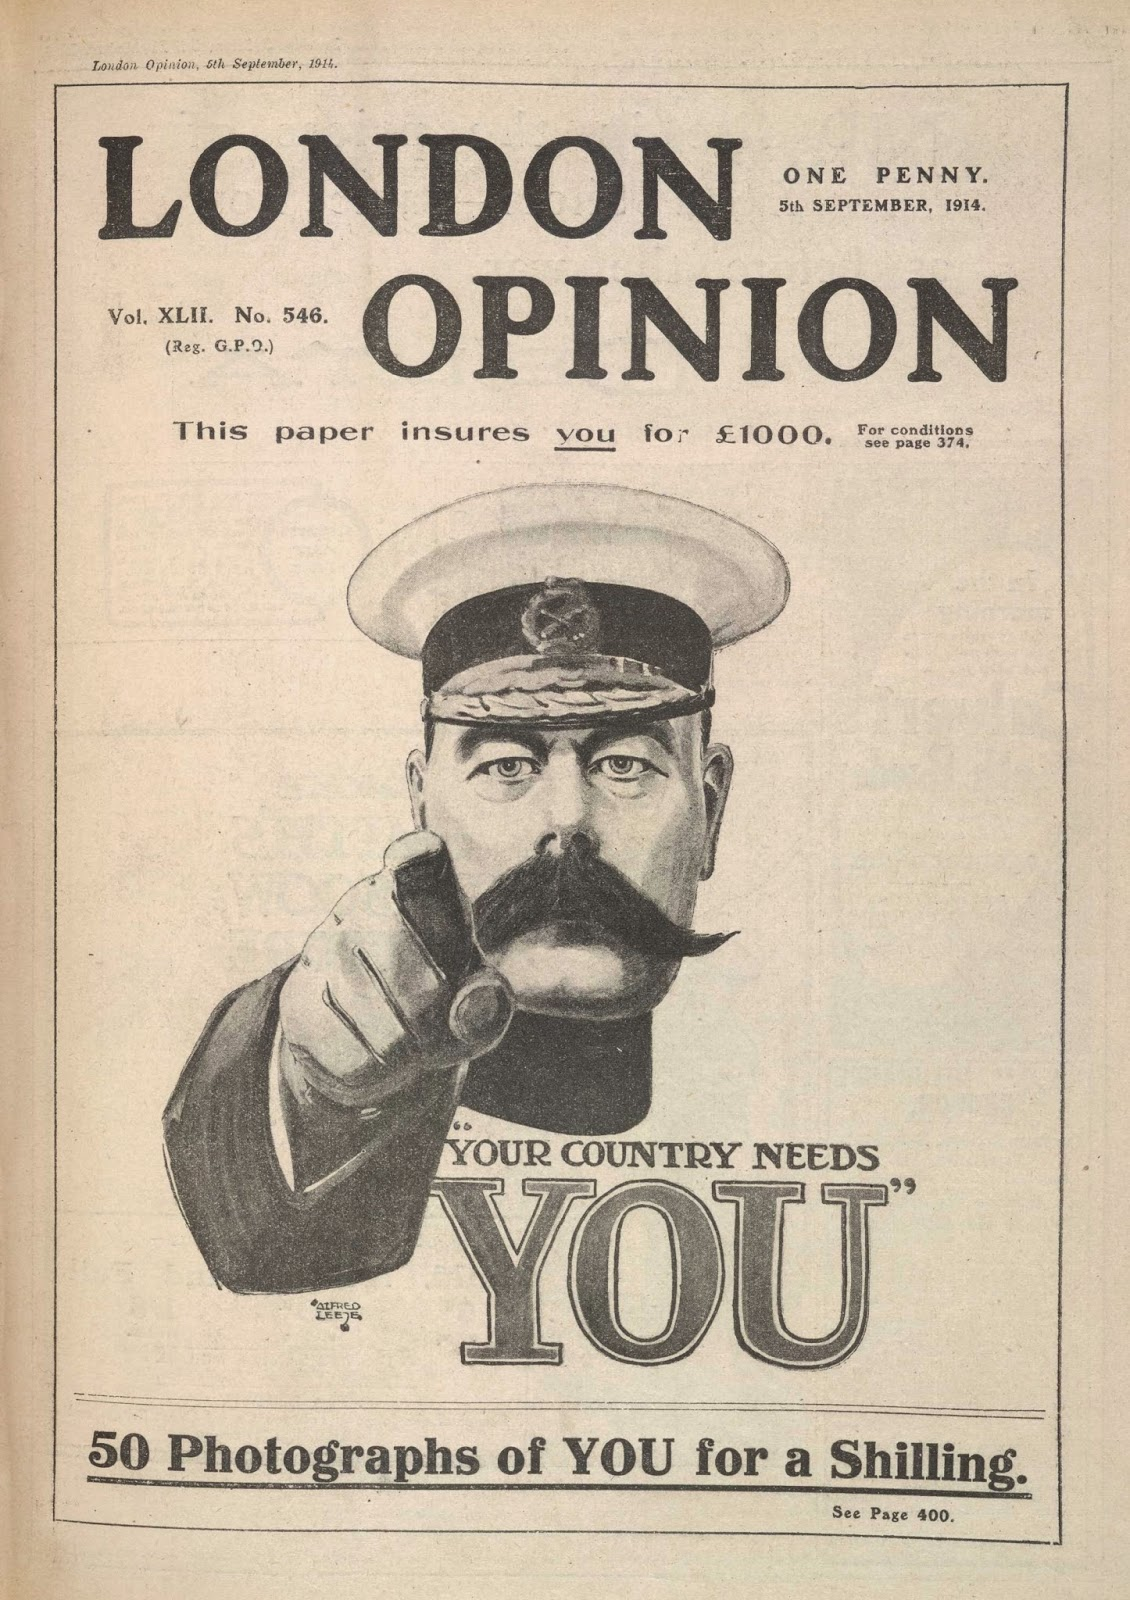 WW1 'your country needs you' poster